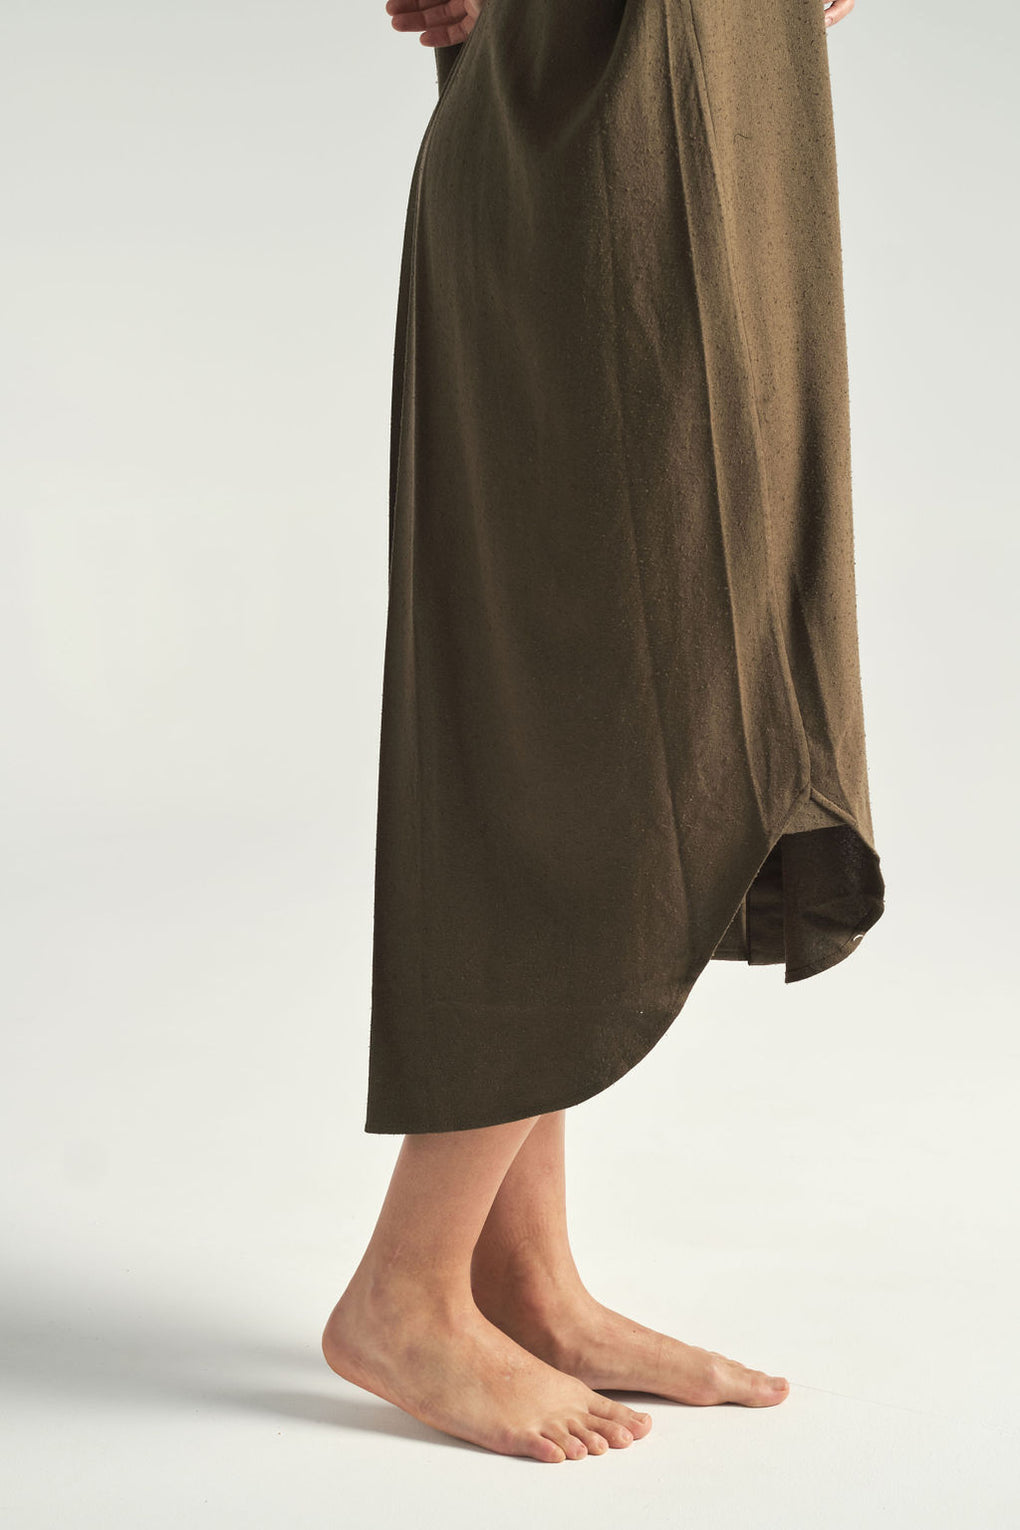 Signature Maxi Shirtdress in Olive